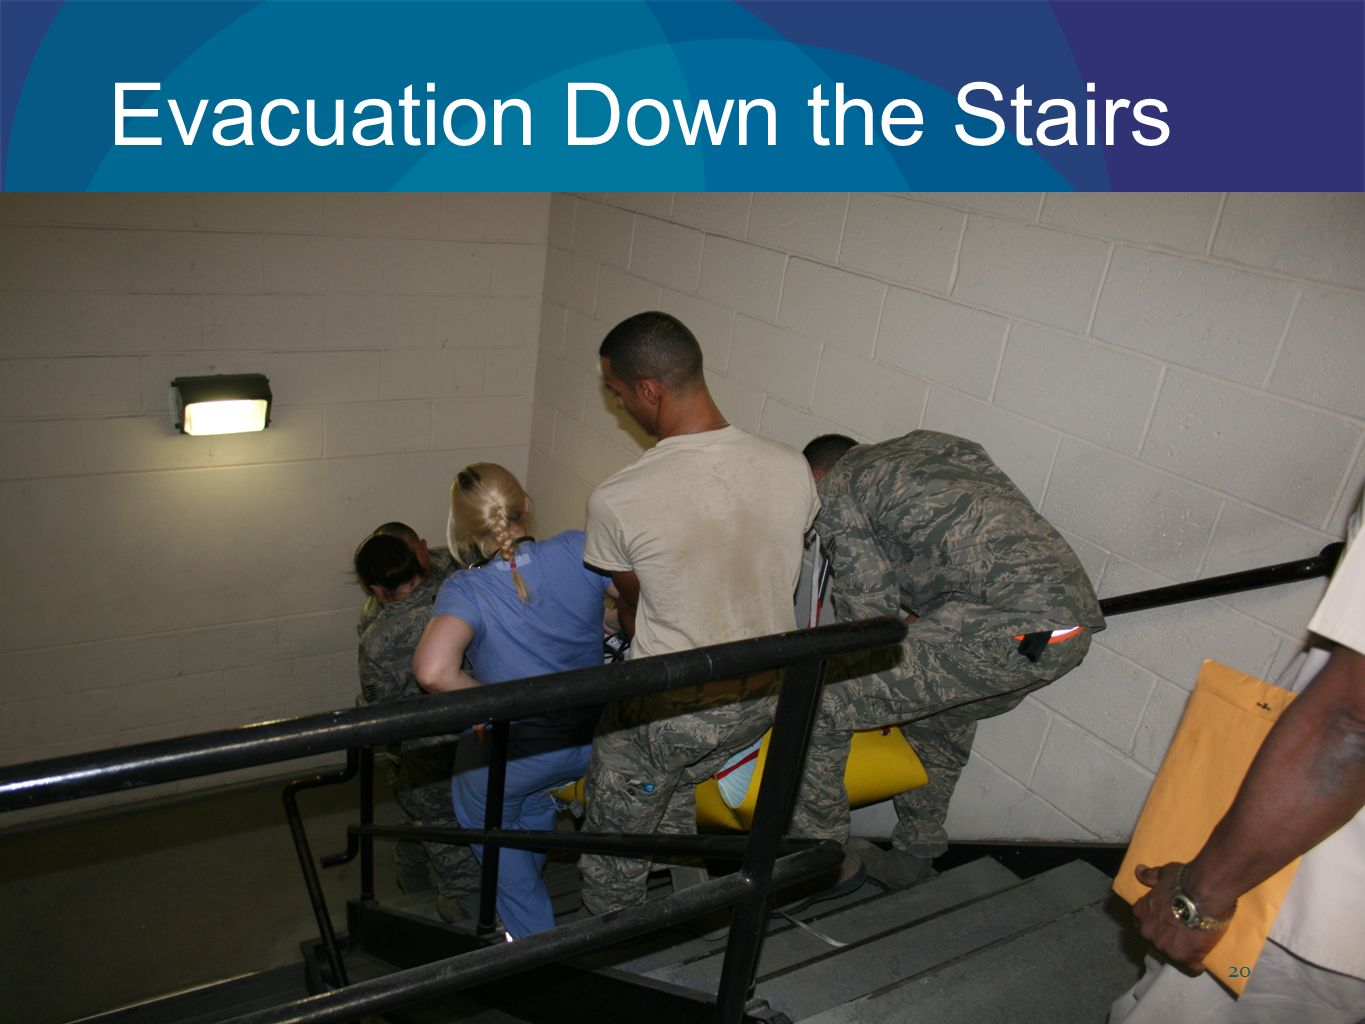 Evacuation Down the Stairs